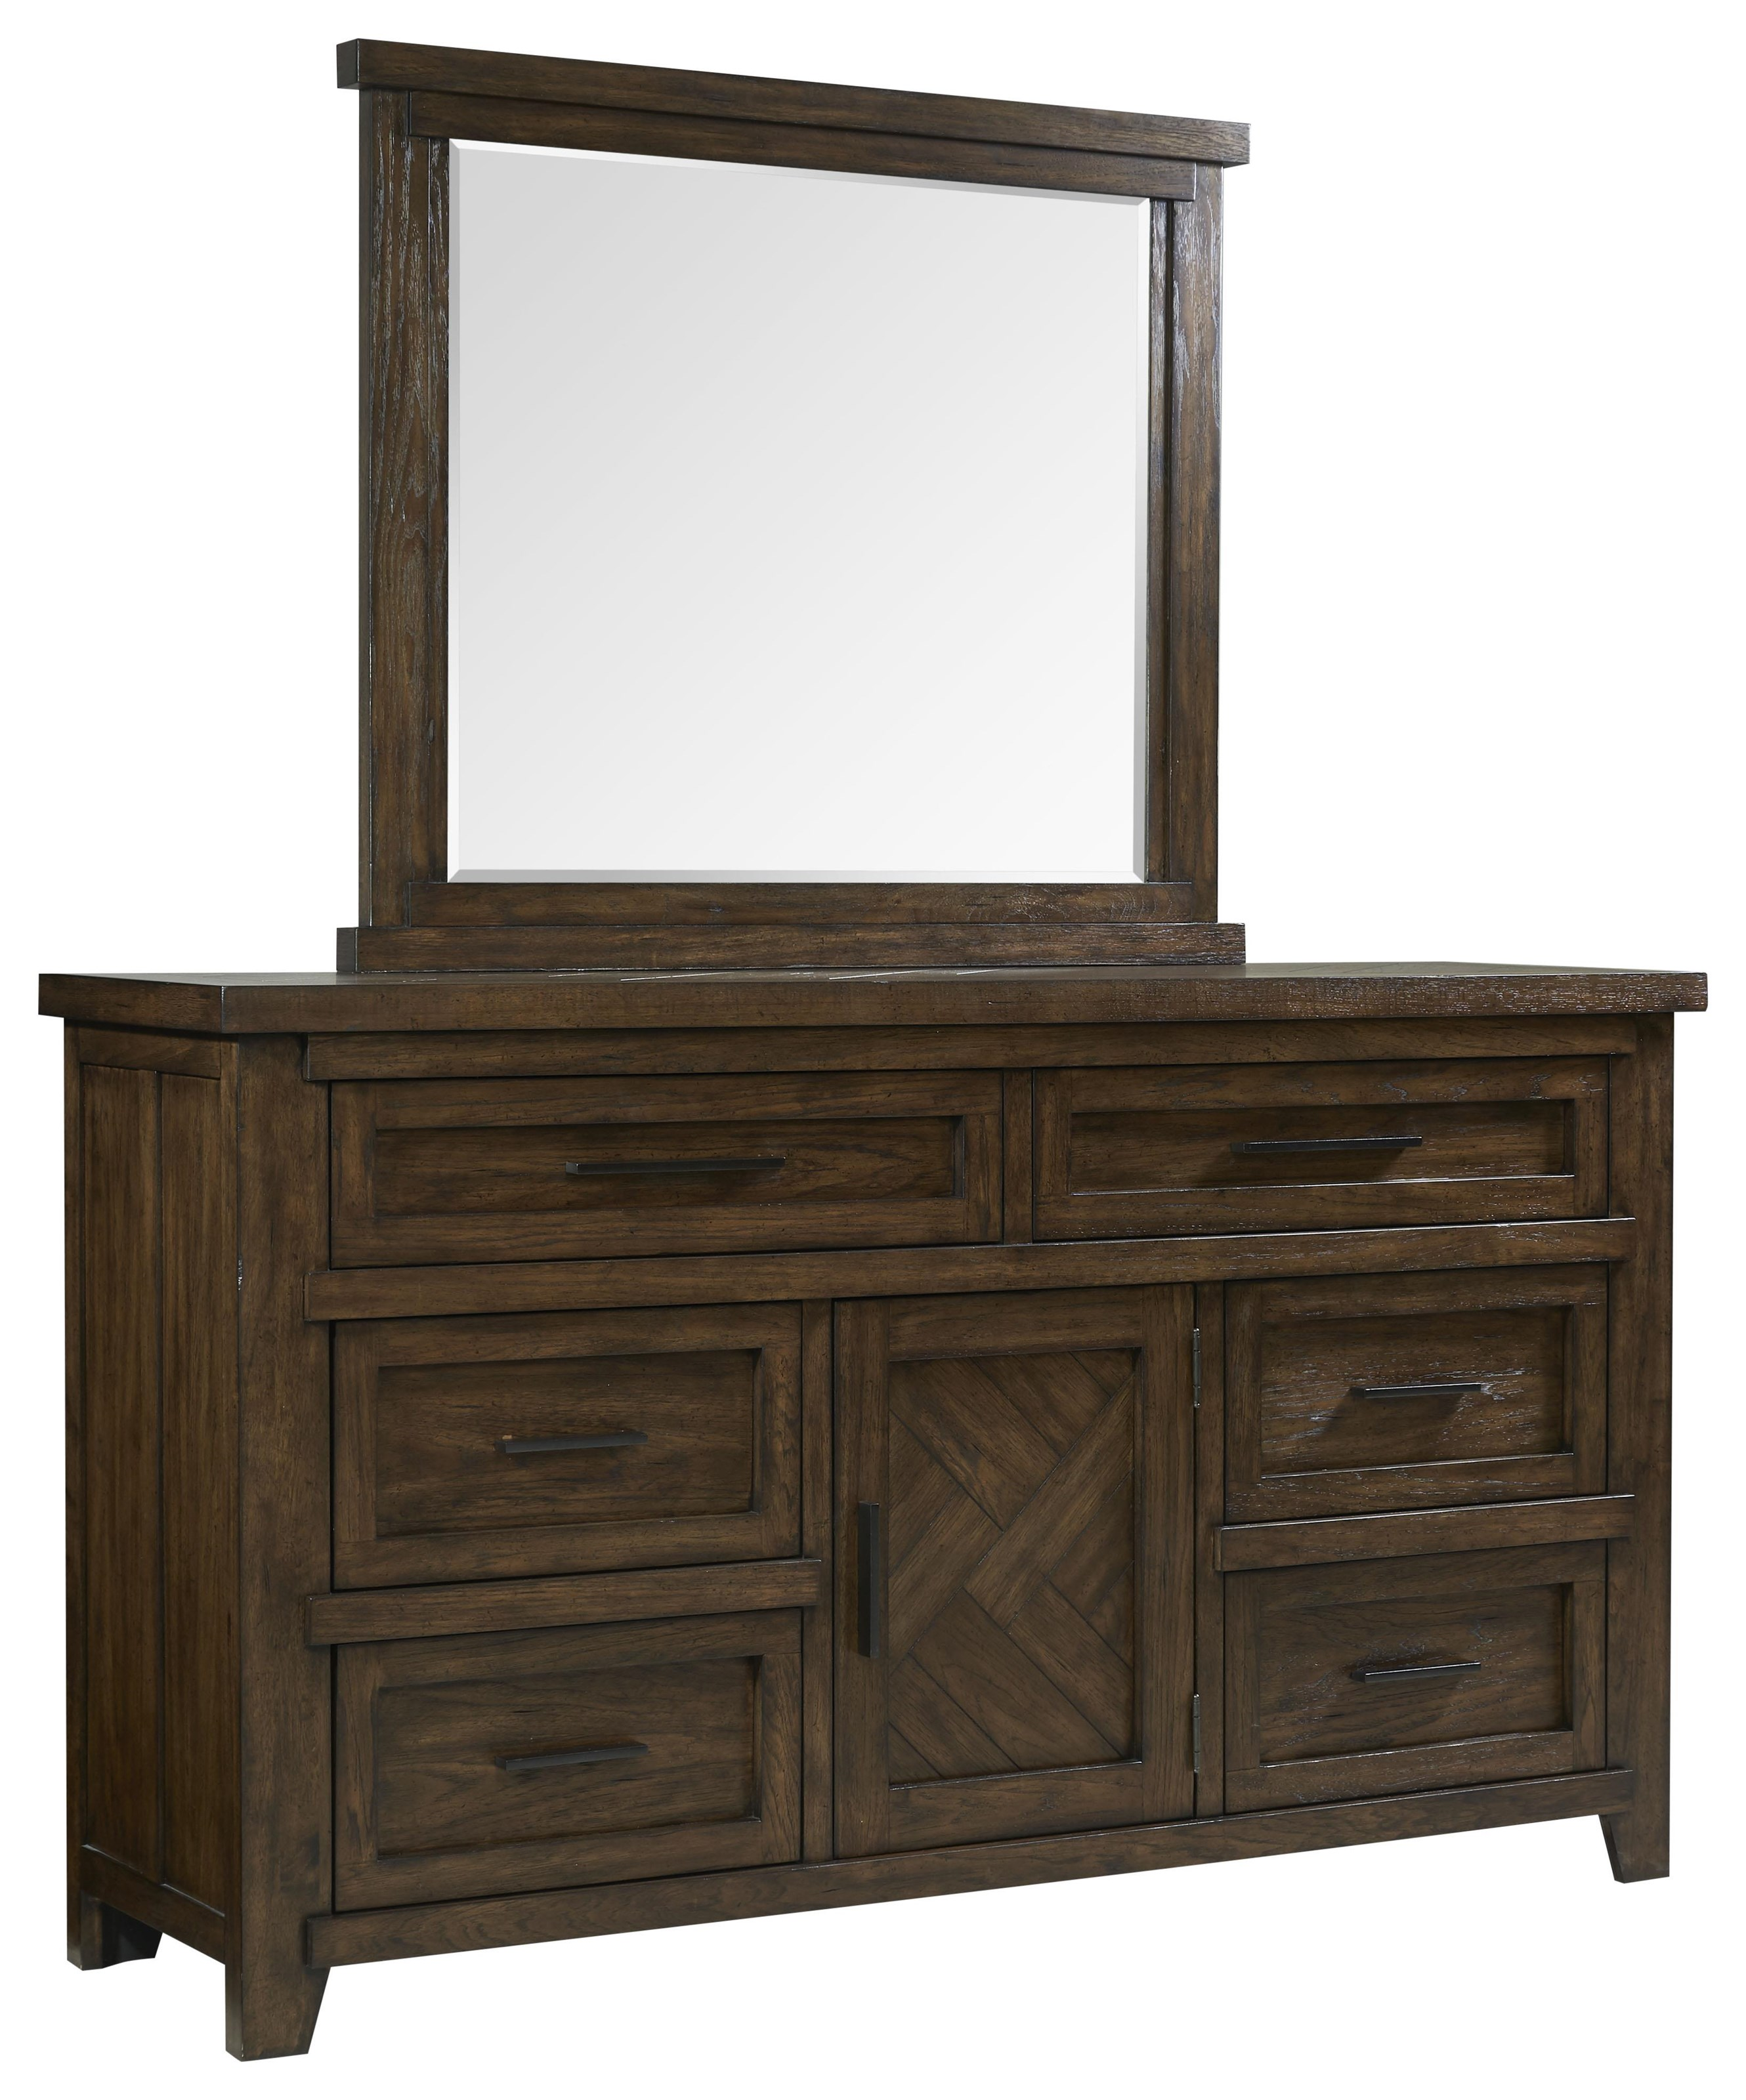 Tally's Crossing Dresser by FD Home at Darvin Furniture